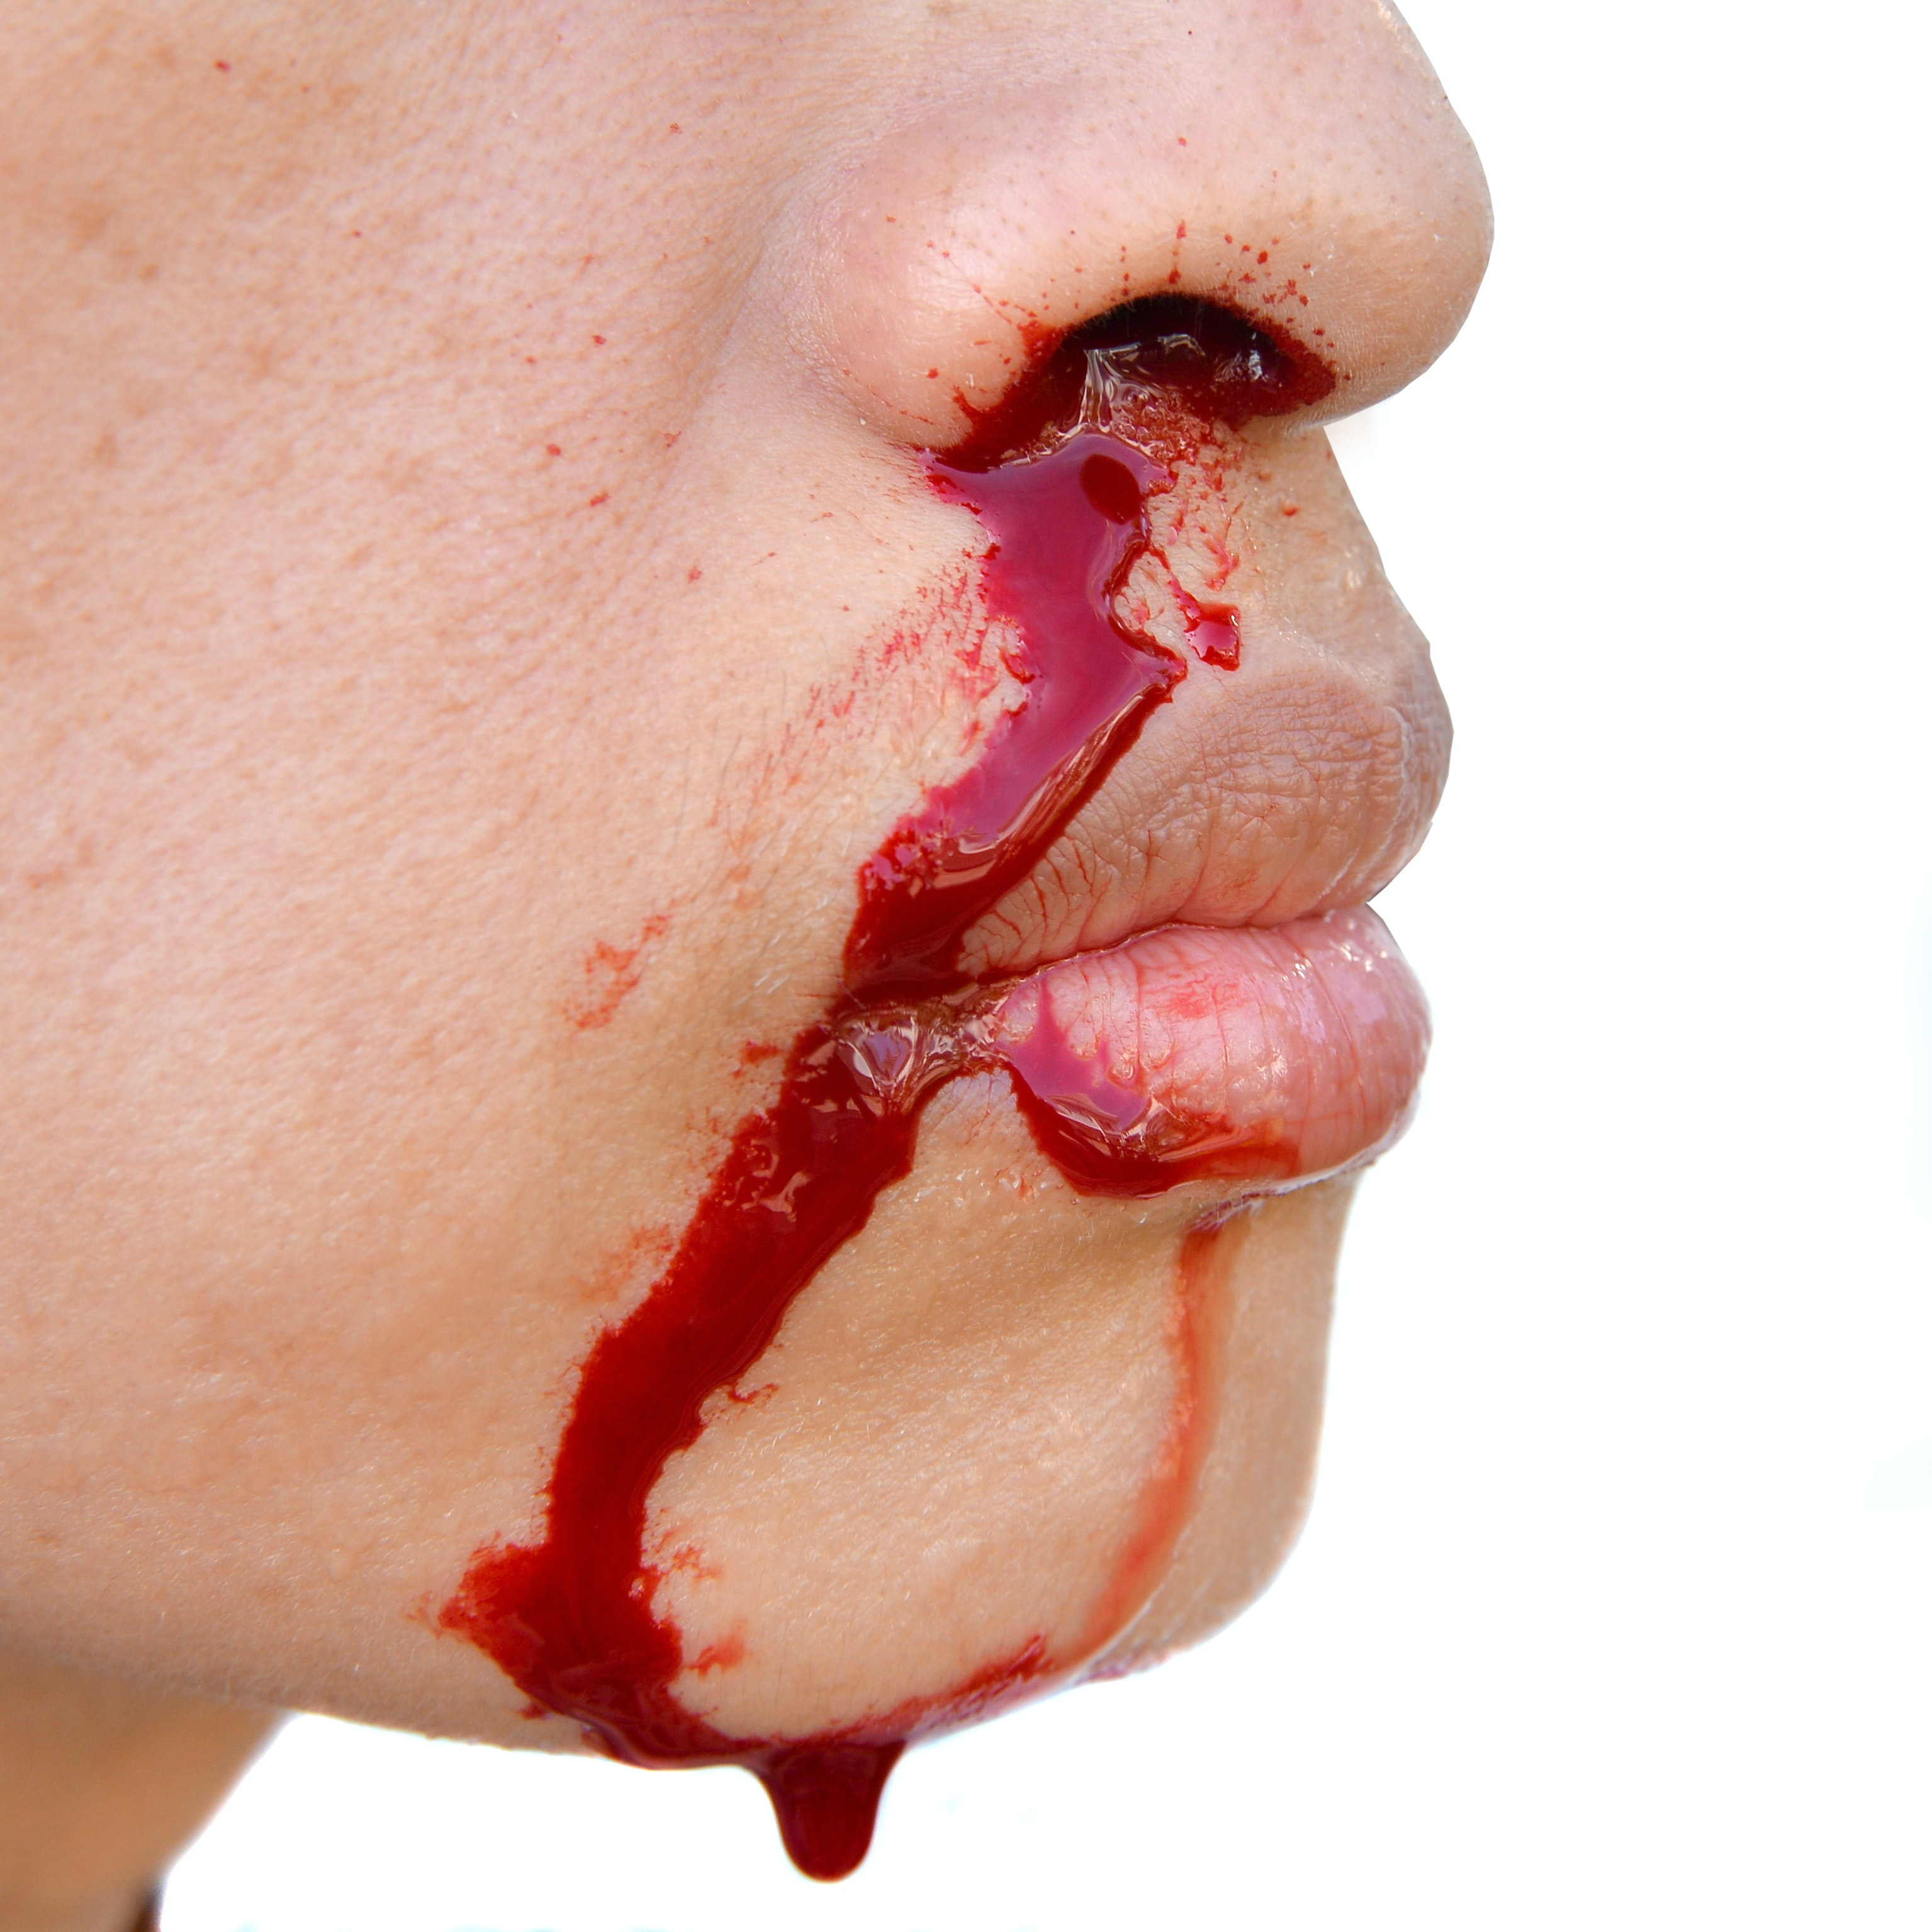 An image depicting a person suffering from bloody nose after being hit in the nose symptoms